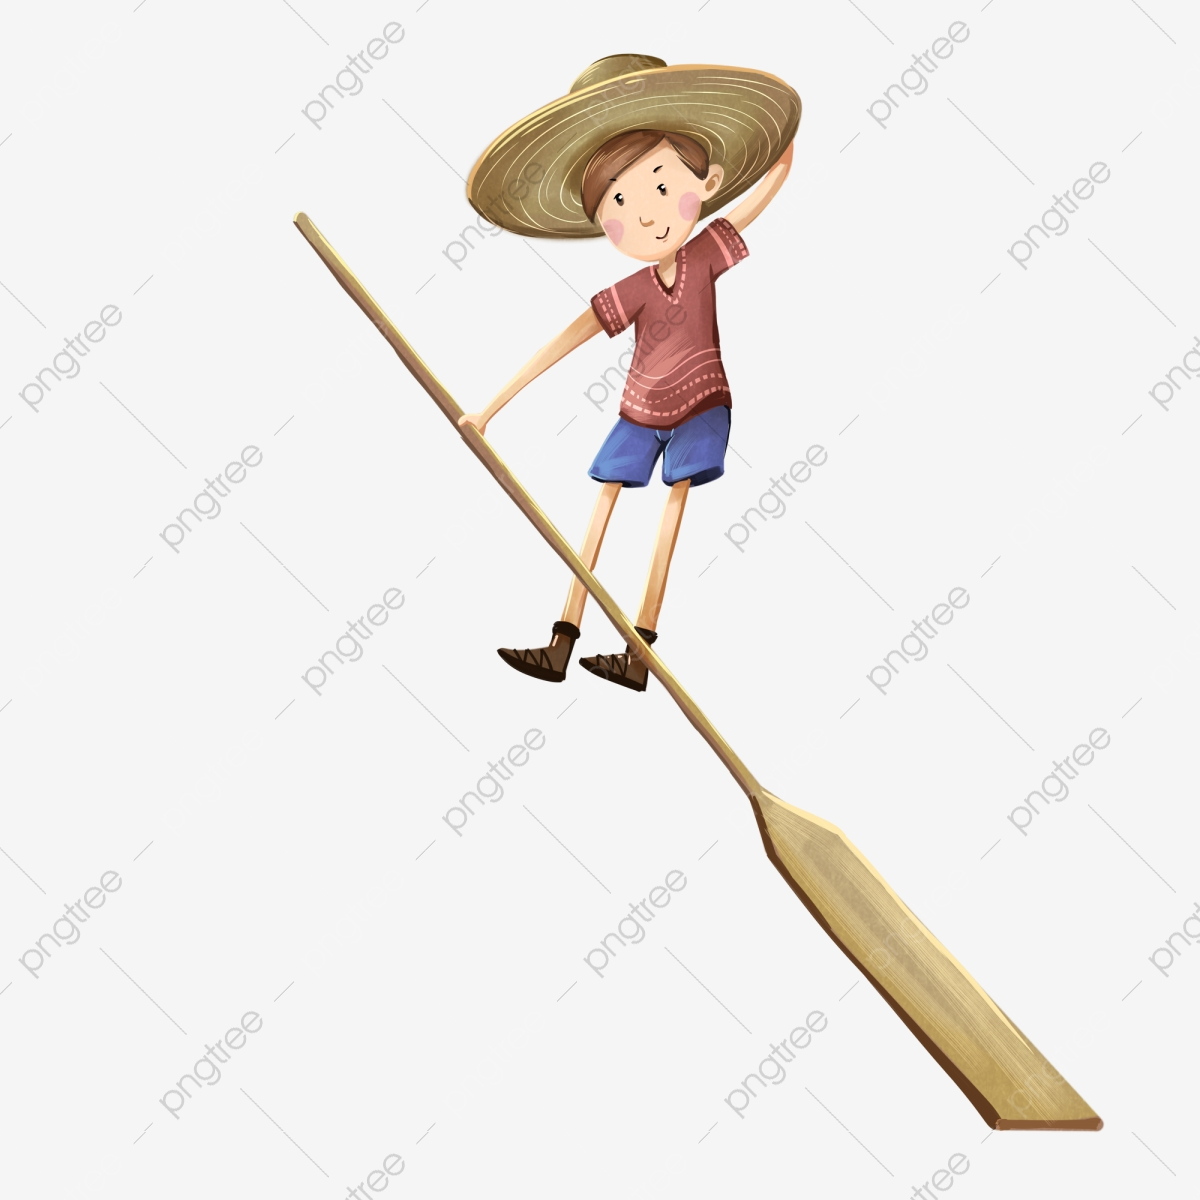 Boy Holding A Paddle Naughty Like Cute Png Transparent Clipart